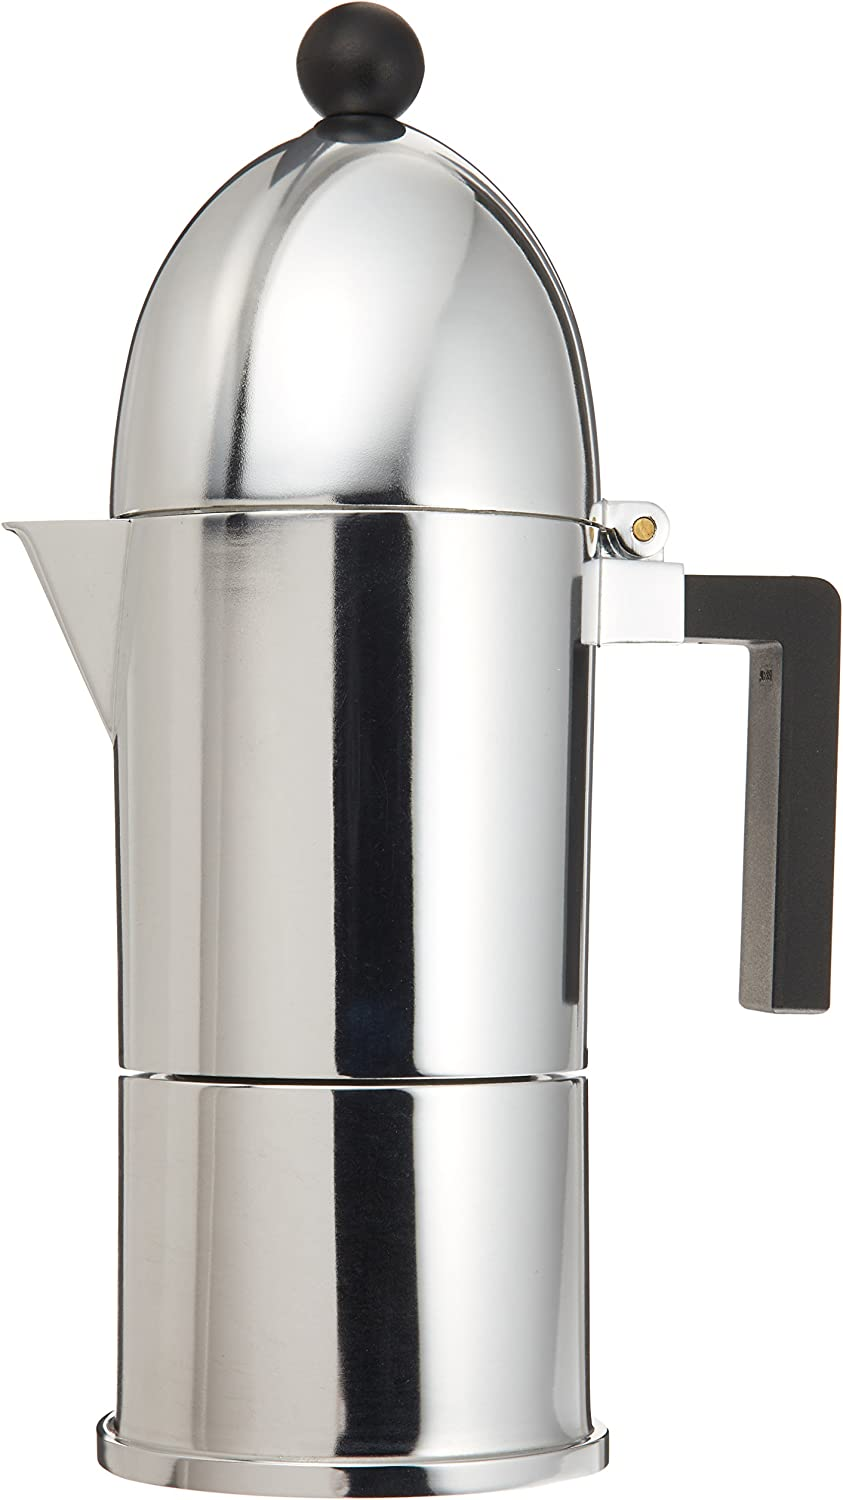 Alessi A9095 6 B La Cupola 6-Cup Silver Aluminum Espresso Maker With Black Handle